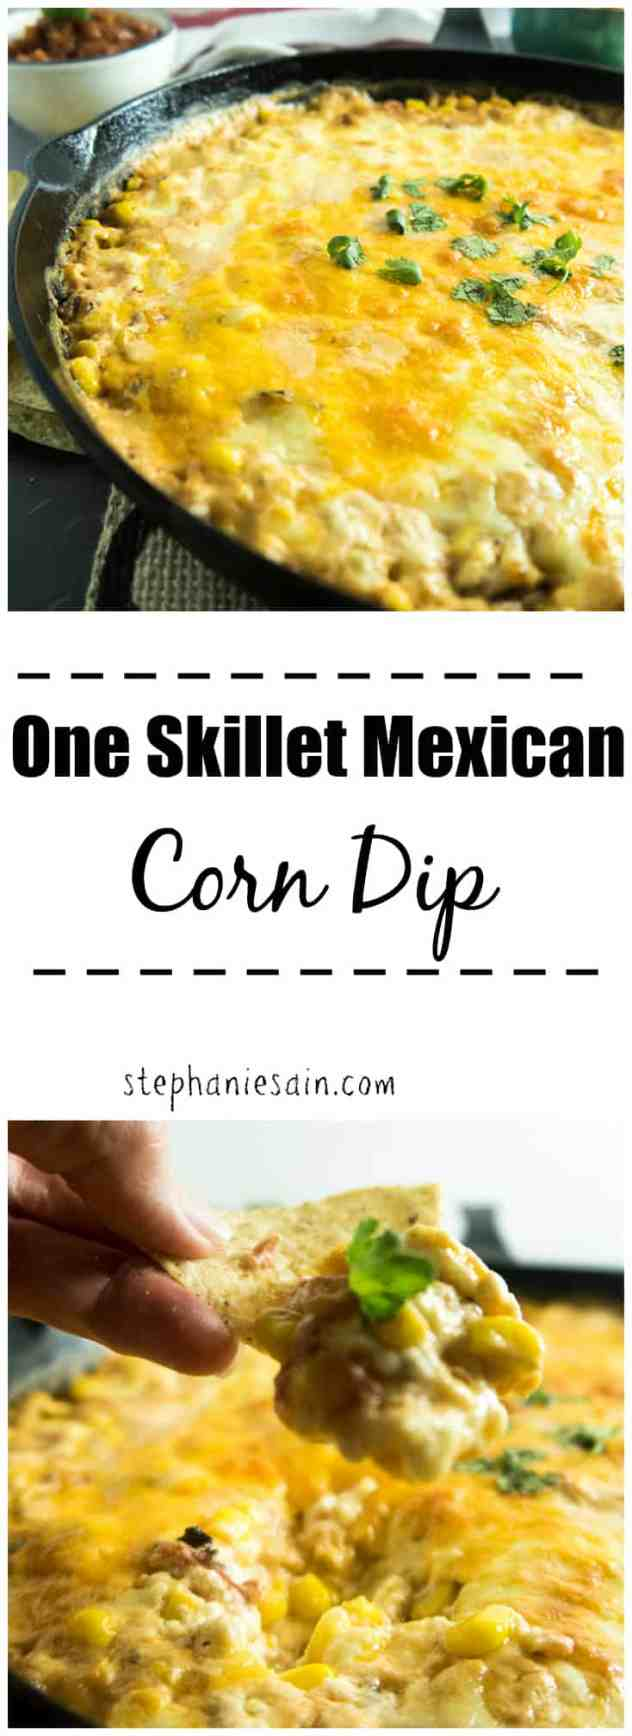 One Skillet Mexican Corn Dip is a tasty one pan appetizer or dinner that is loaded with corn and a creamy cheesy goodness. Vegetarian & Gluten Free.